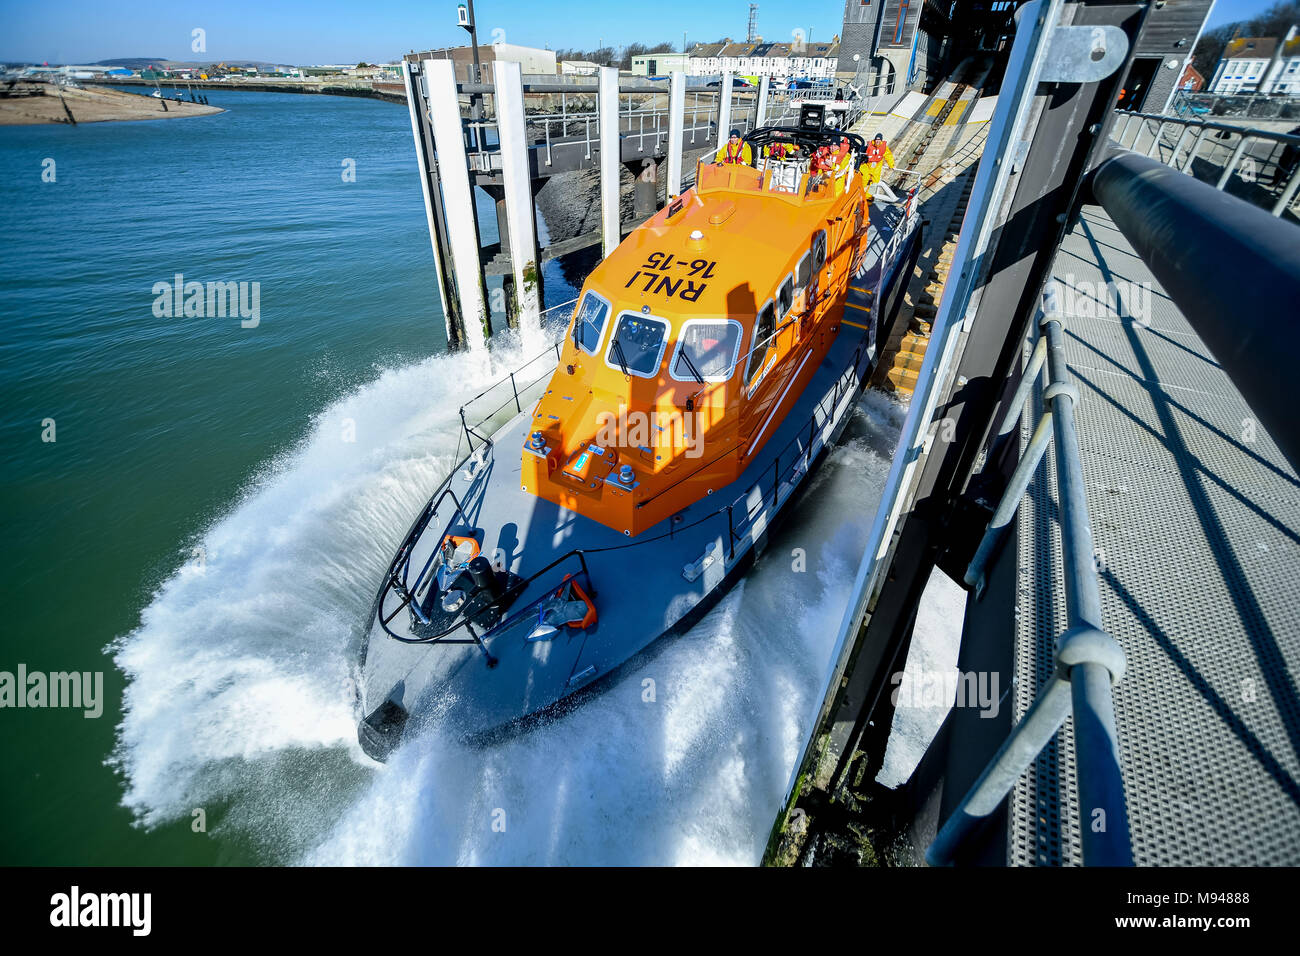 RNLI Rescue vessel launches into the sea from its base in Shoreham by Sea, Sussex, UK. - Stock Image